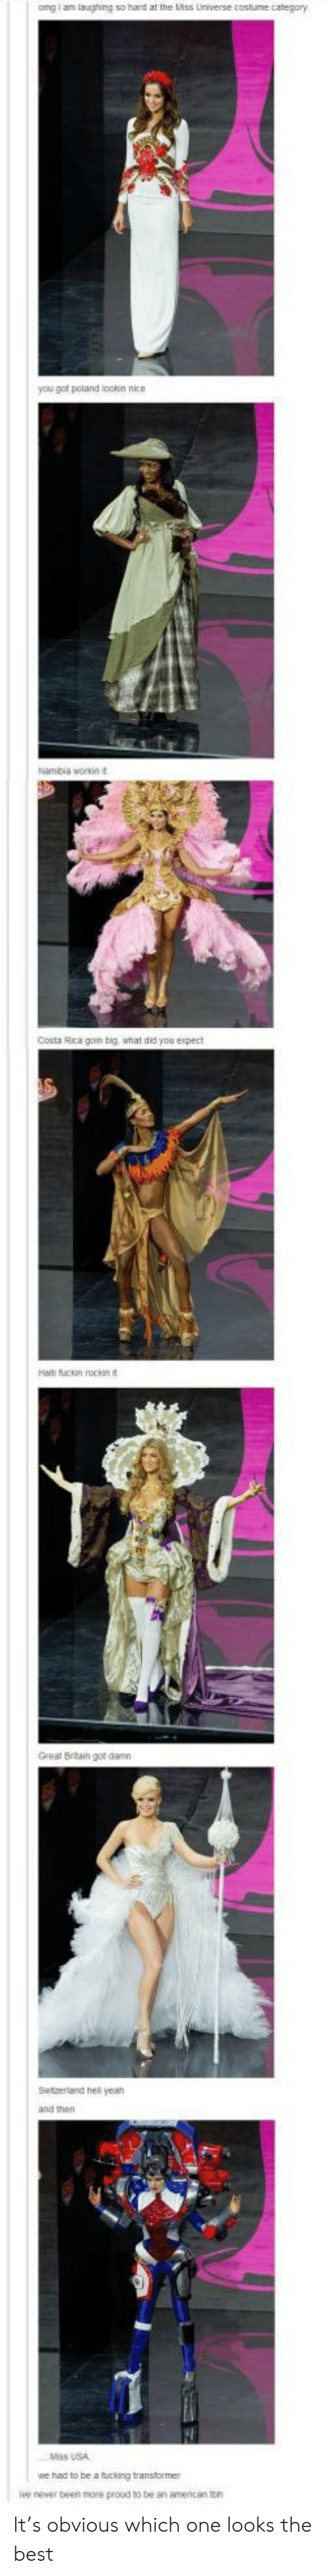 Costa Rica: omgi am laughing so hard at the Miss Lniverse costume category  you got poland lookin nice  kambia workin it  Costa Rica gom big what did you espect  aiti fuckin rockin it  Great Brtain got damn  Ewitzerland hell yeah  and then  Miss USA  we had to be a tucking tansformer  ive never been more proud to be an amencan ton It's obvious which one looks the best